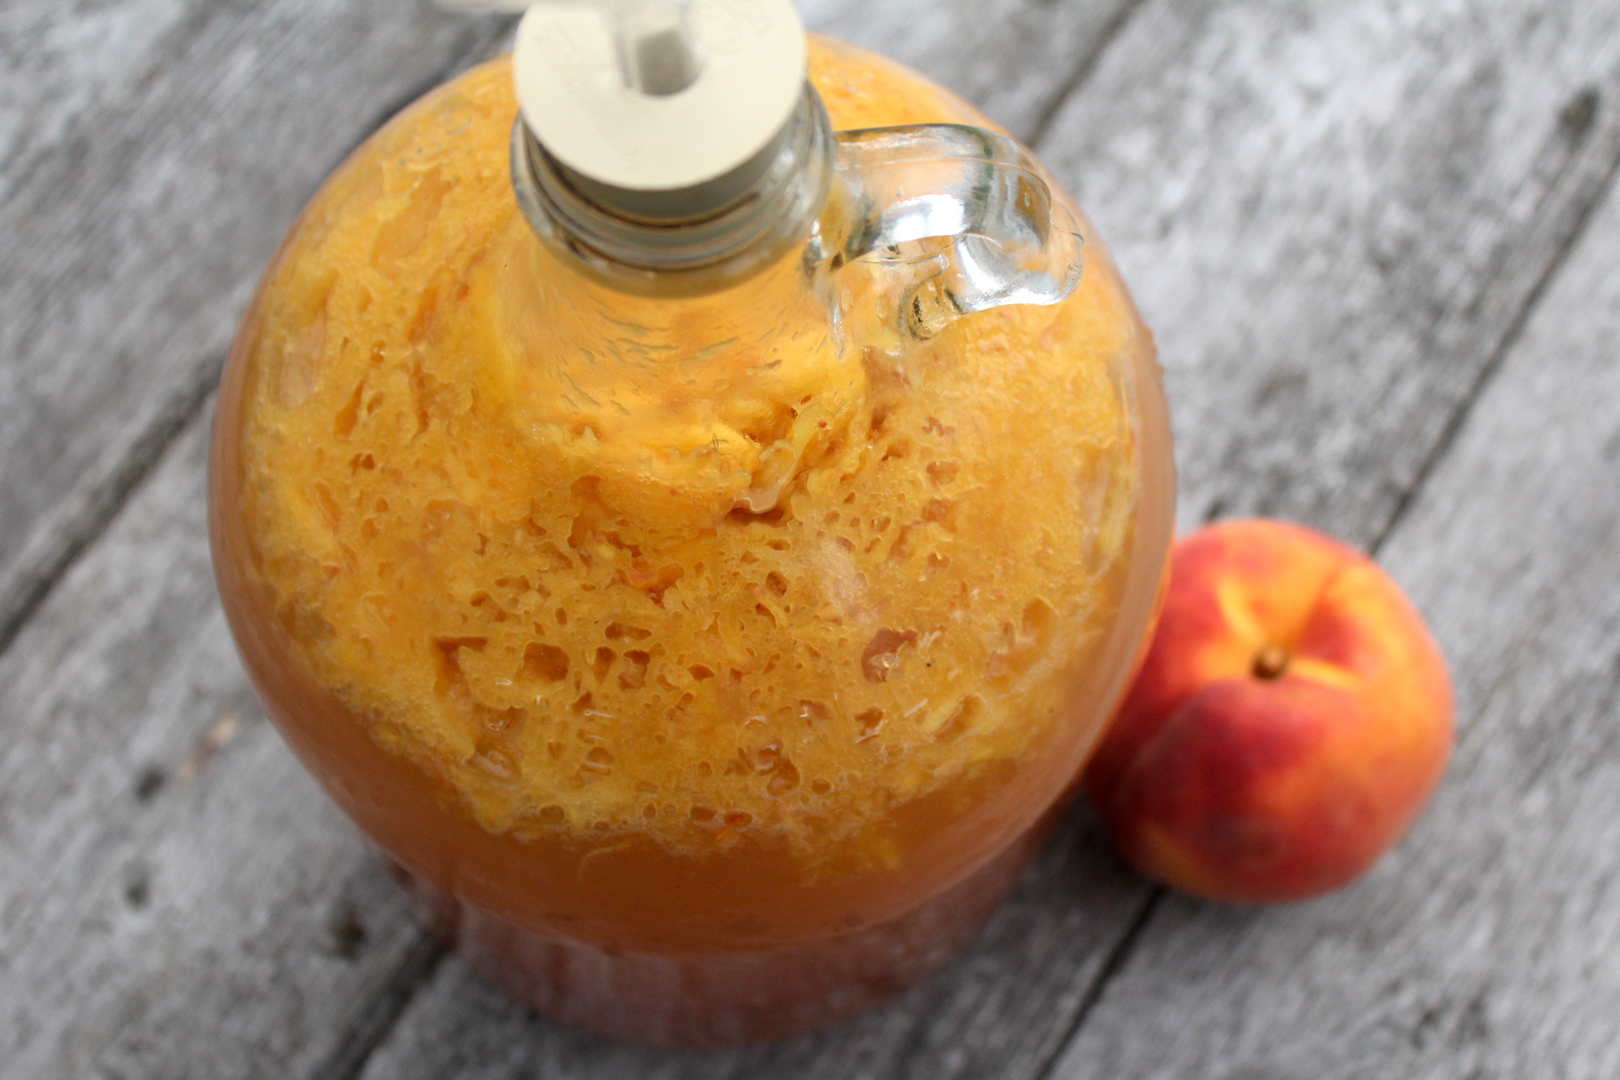 Homemade Peach Wine Practical Self Reliance